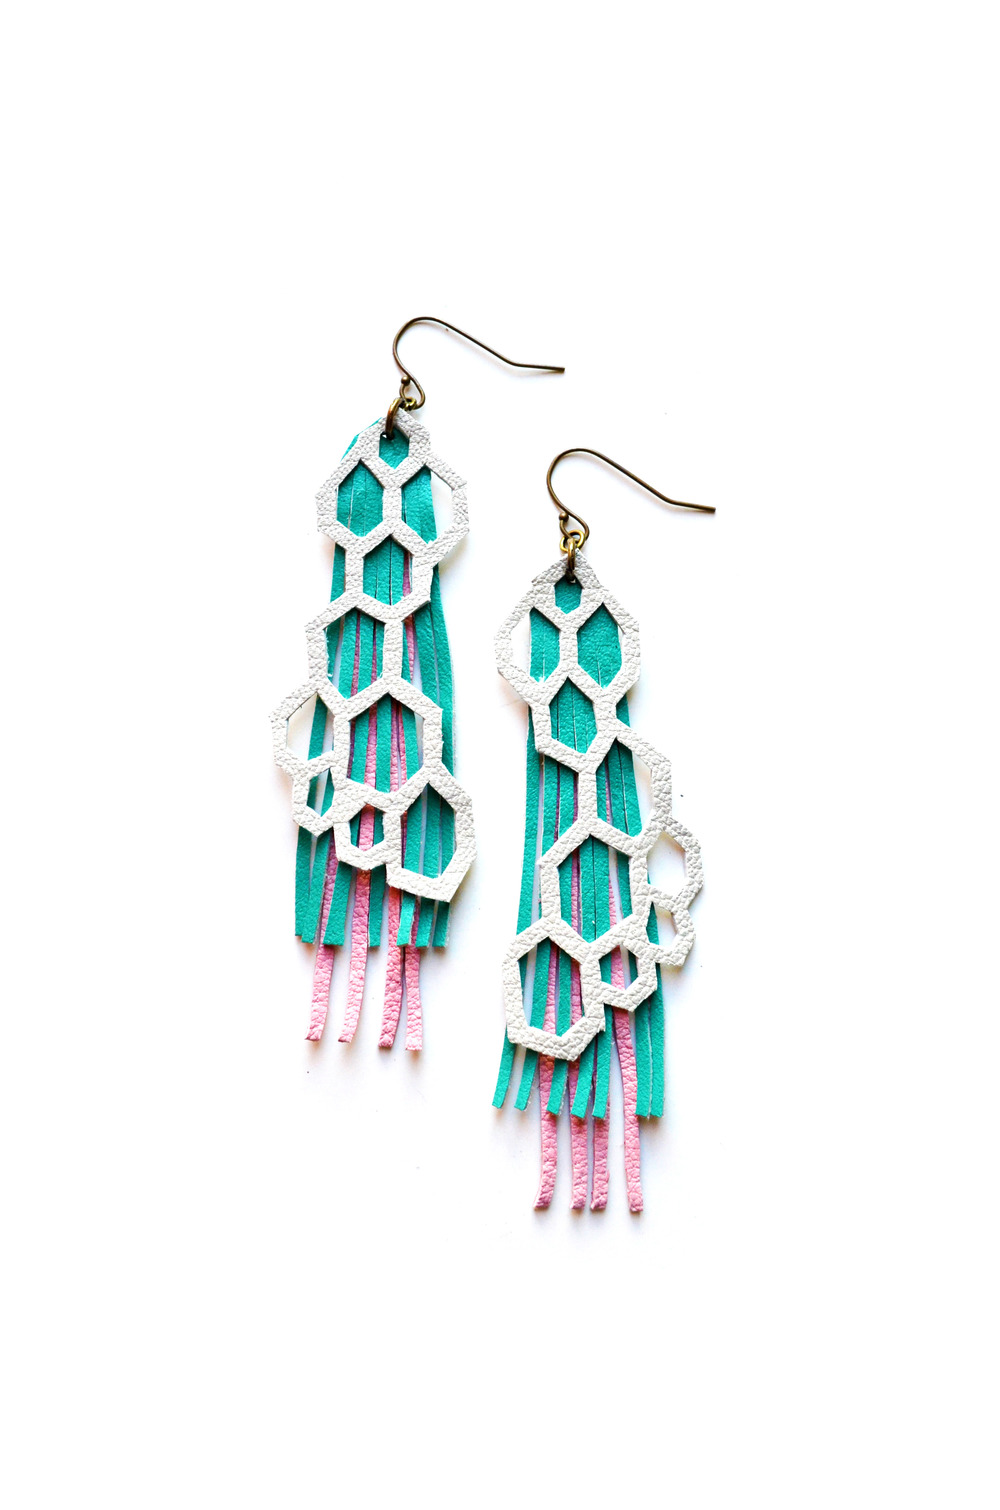 Geometric Leather Earrings Hexagons and Pastel Fringe 3.jpg